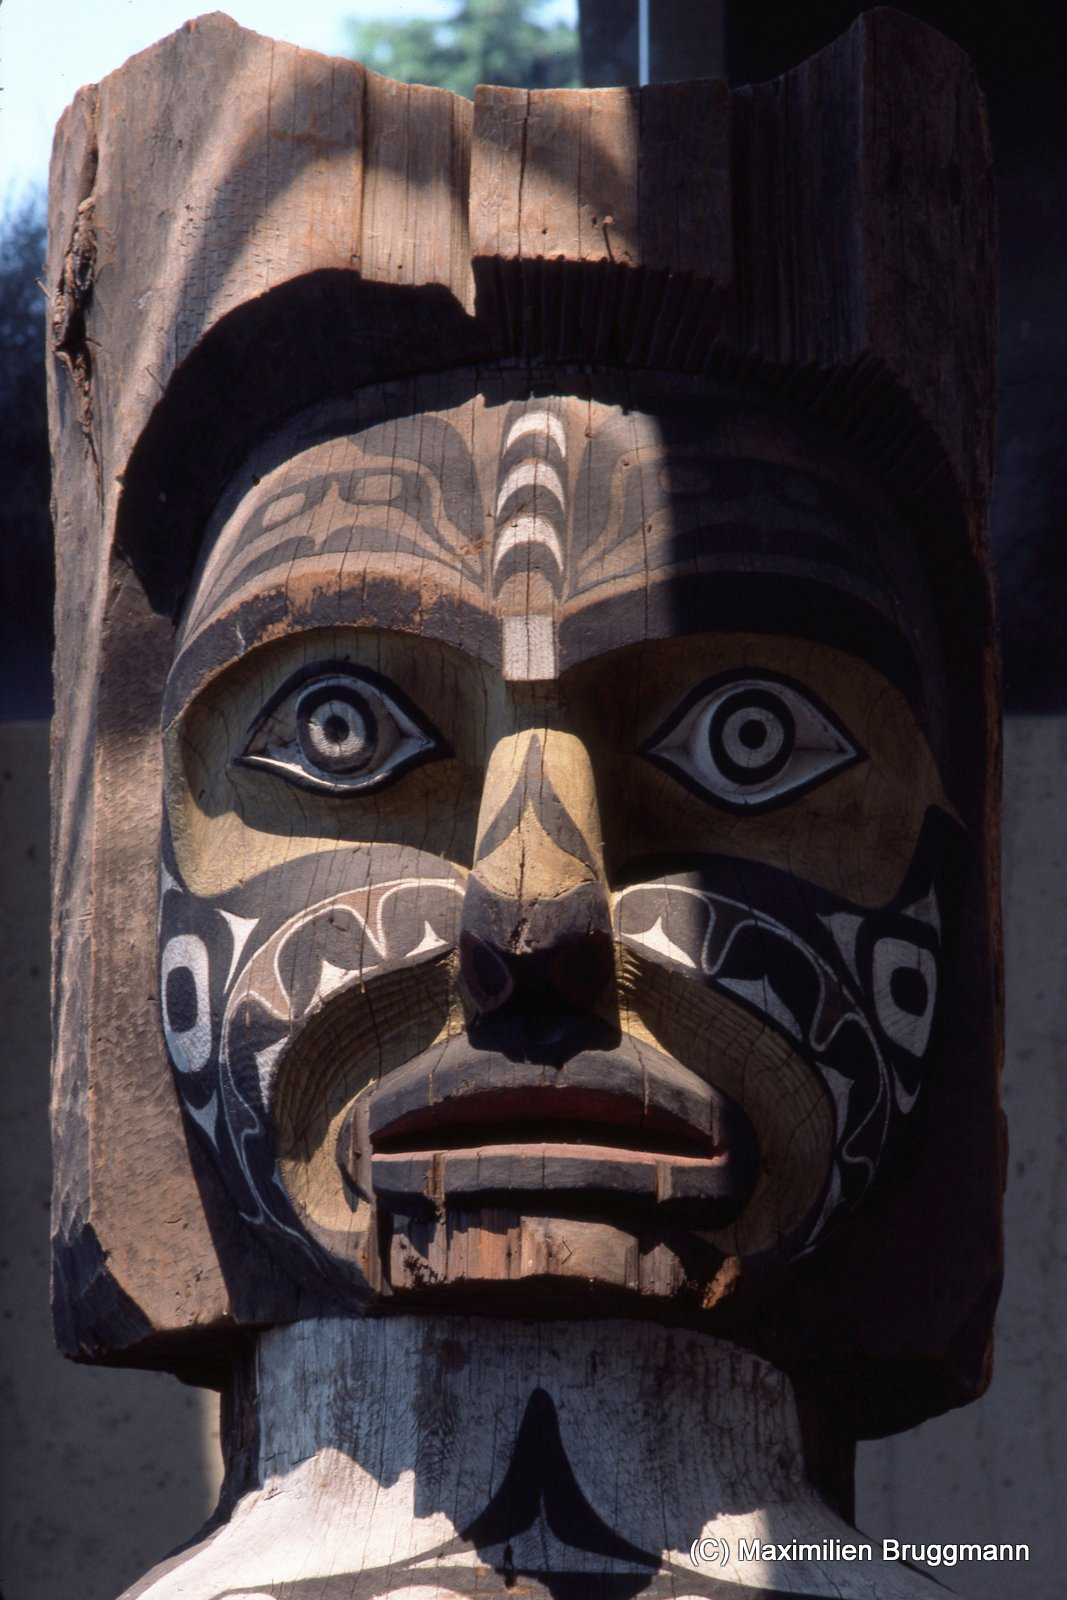 66 This 3.6-meter-tall (12-foot-tall) ancestral figure, carved from the wood of a red cedar, served as a house post in the interior of a Koskimo Kwakiutl house in Quatsino. The lower portion shows two slaves carry¬ing a plank, which presumably served as the seat for a chief. A killer whale and coppers are depicted on the figure. (MOA)